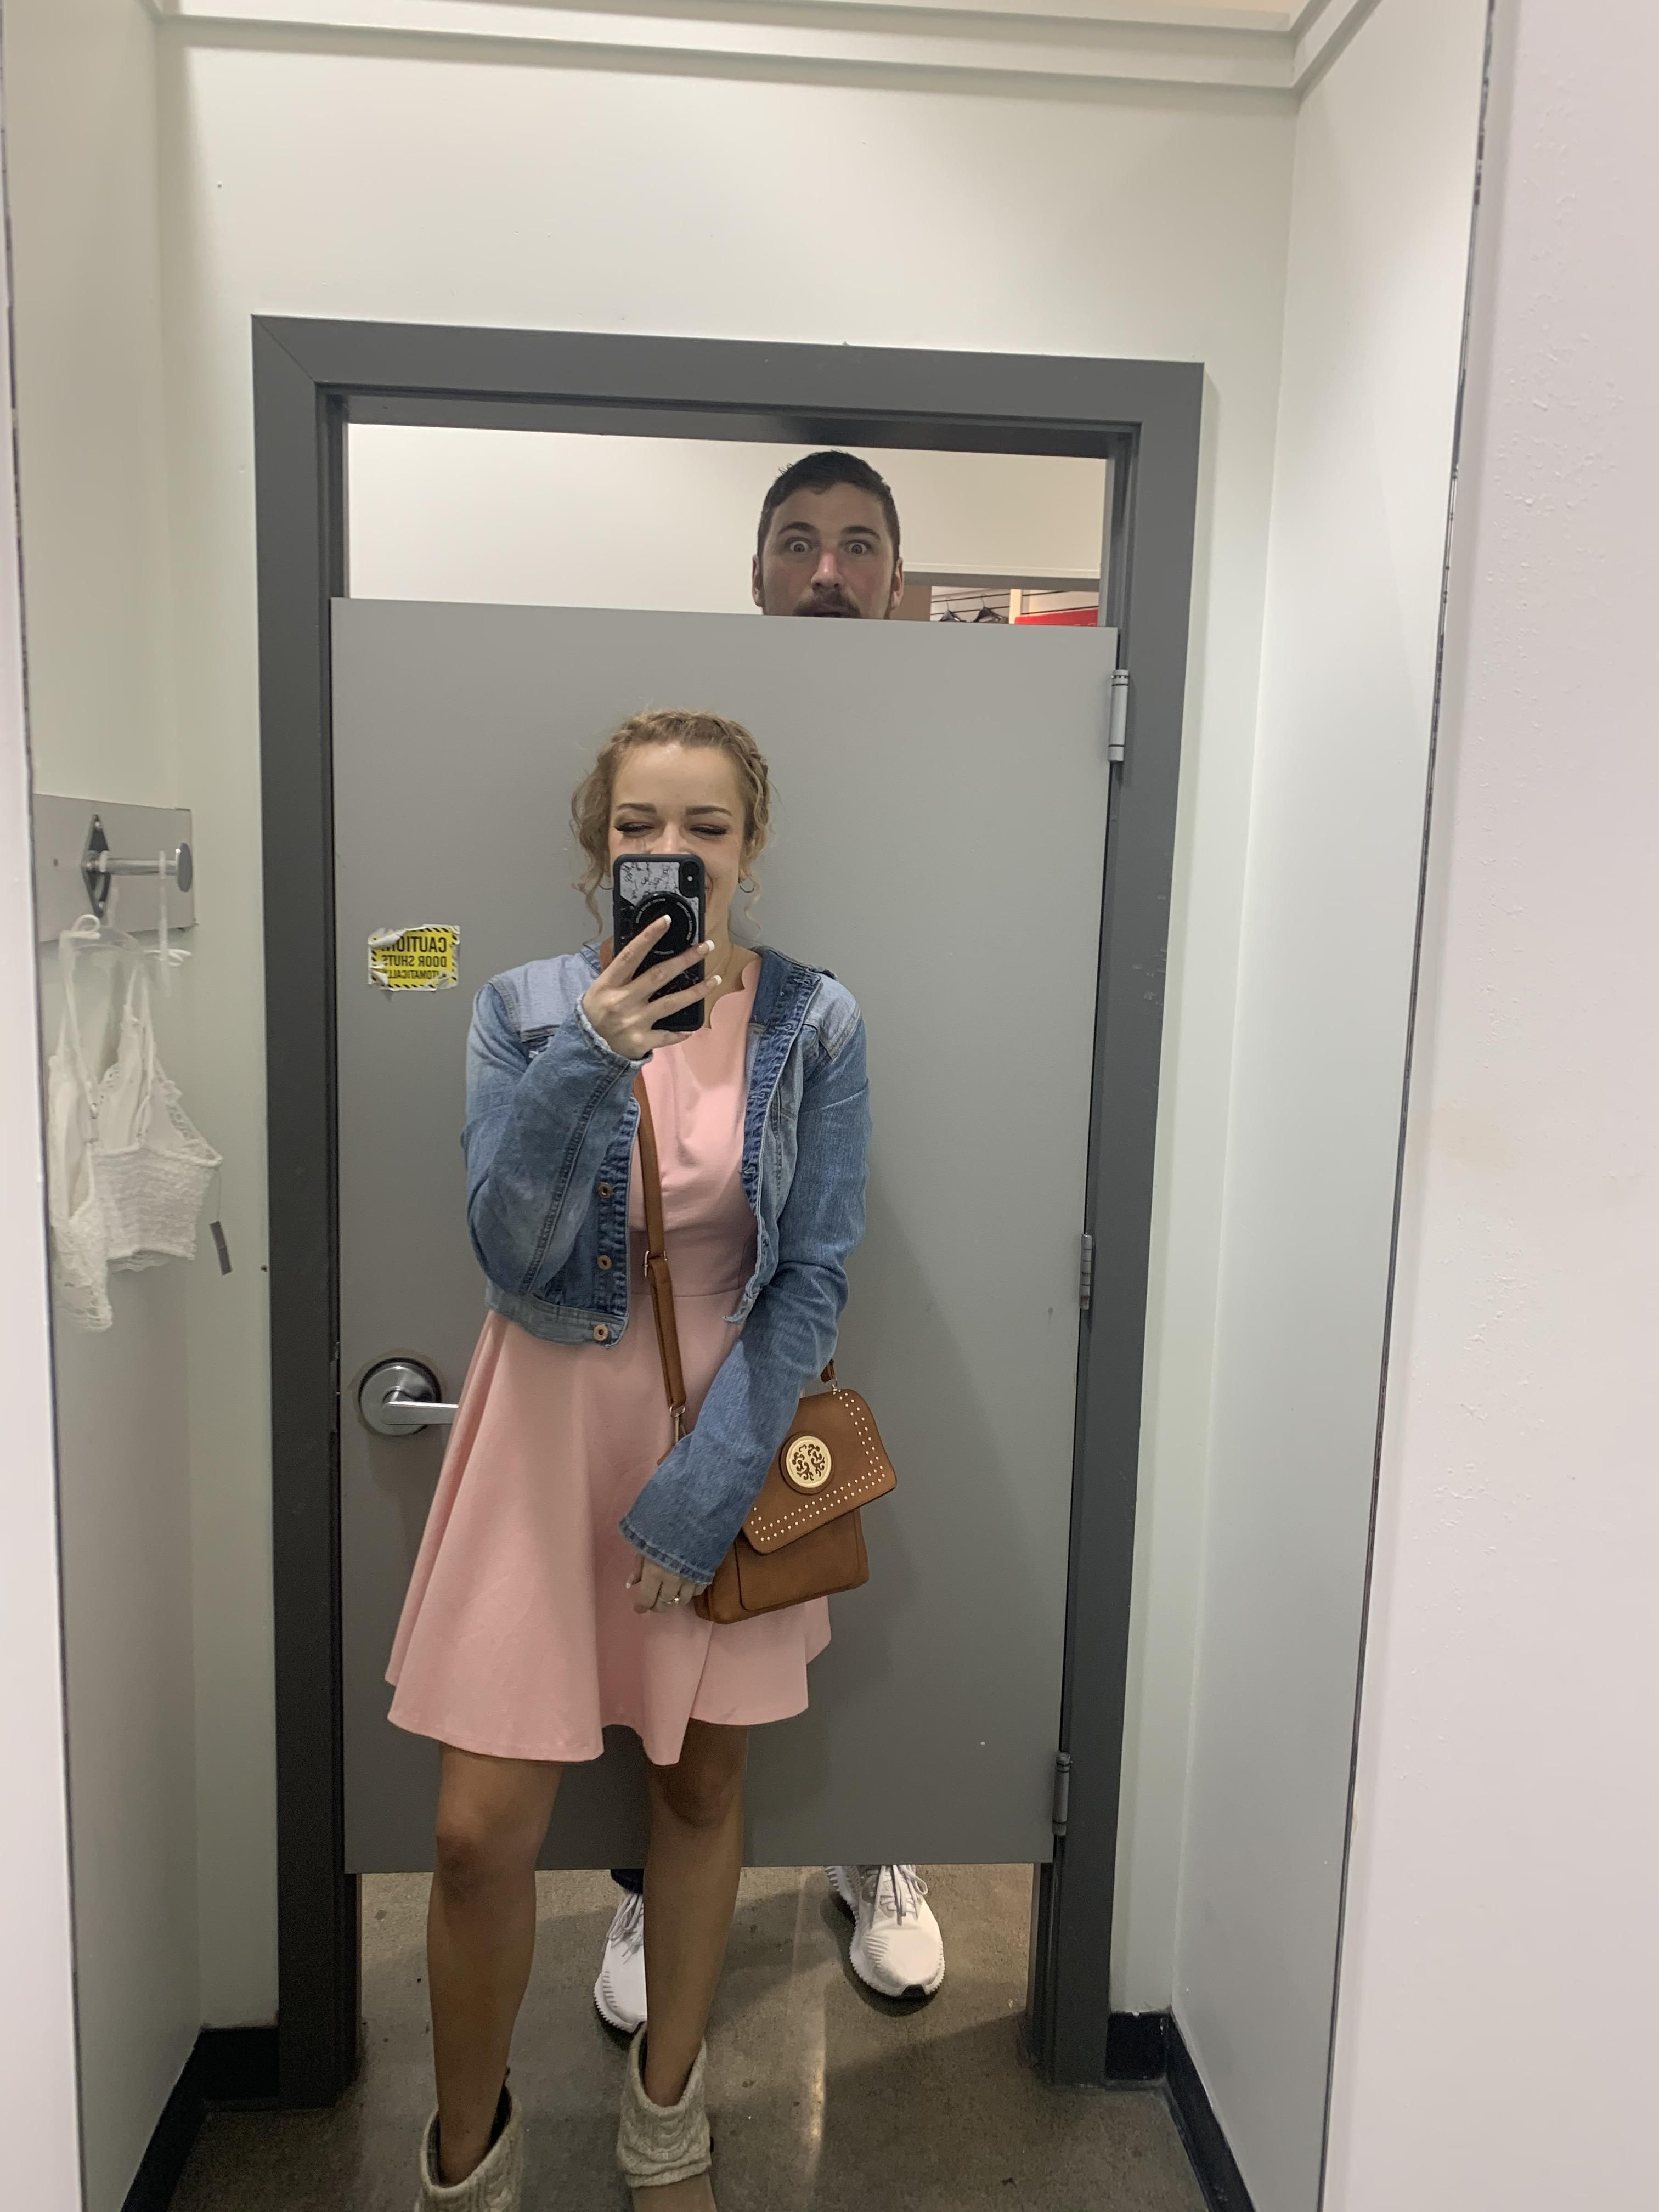 Turns out dressing rooms aren't safe from tall people